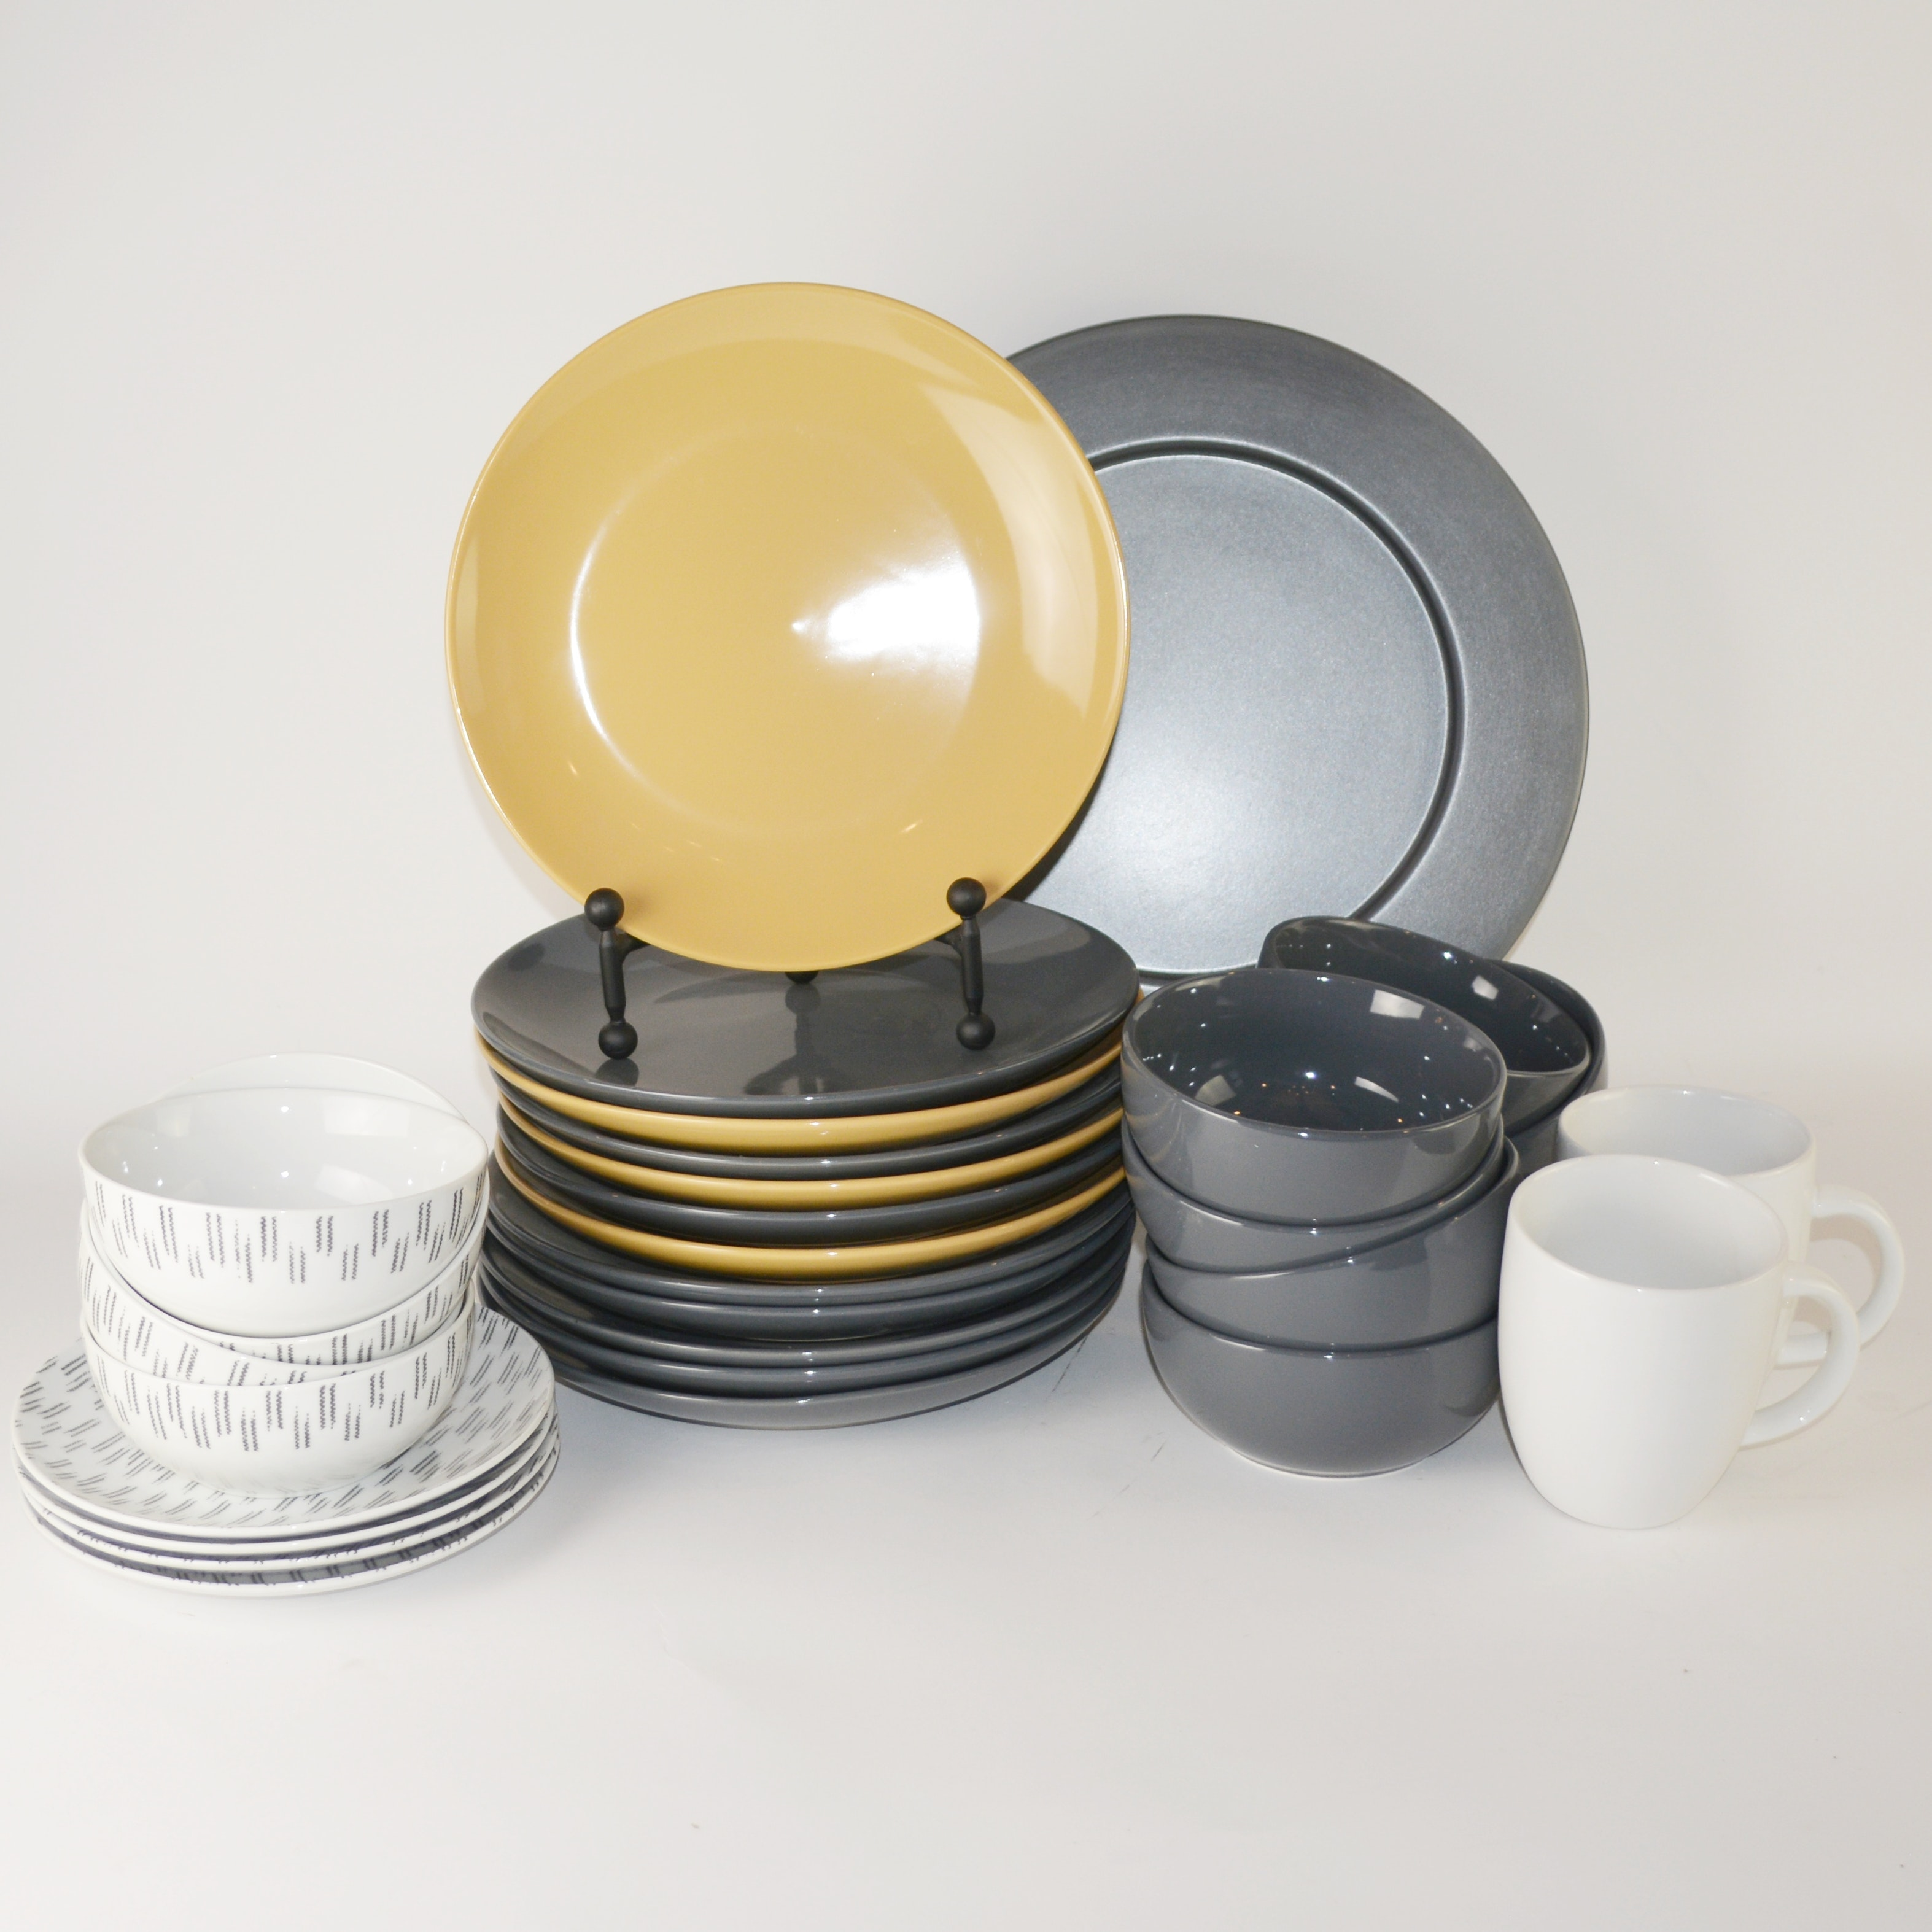 West Elm Ceramic Dinnerware and Others